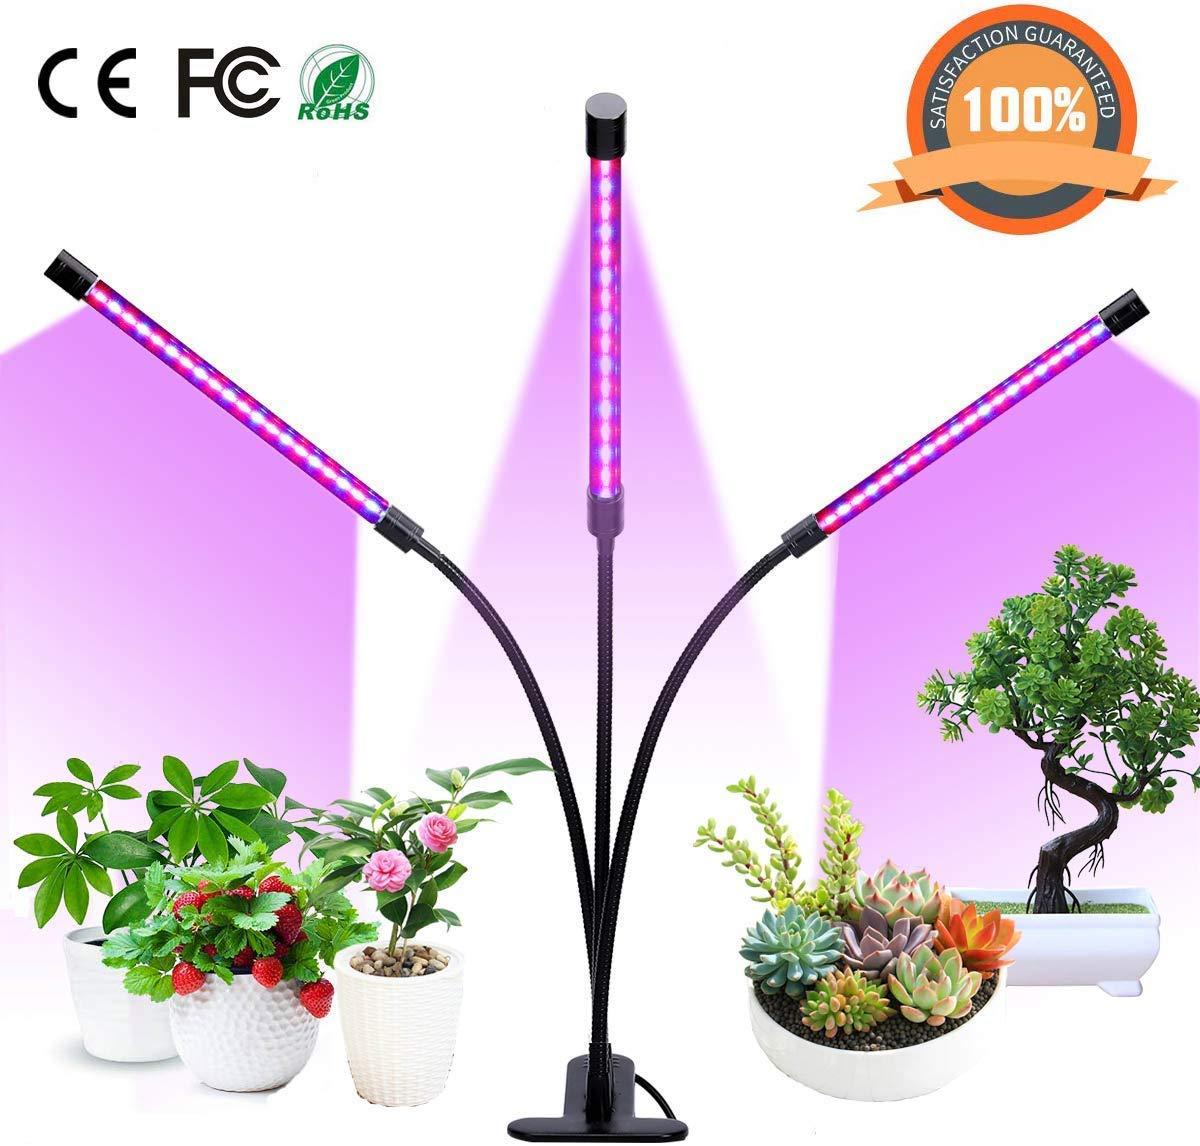 Dclysi Grow Lights 27w Led Plant Grow Lamp Bulbs Auto On Off With 3 6 12h Timer 5 Dimmable Levels Clip On Desk Plant Grow Lights For Indoor